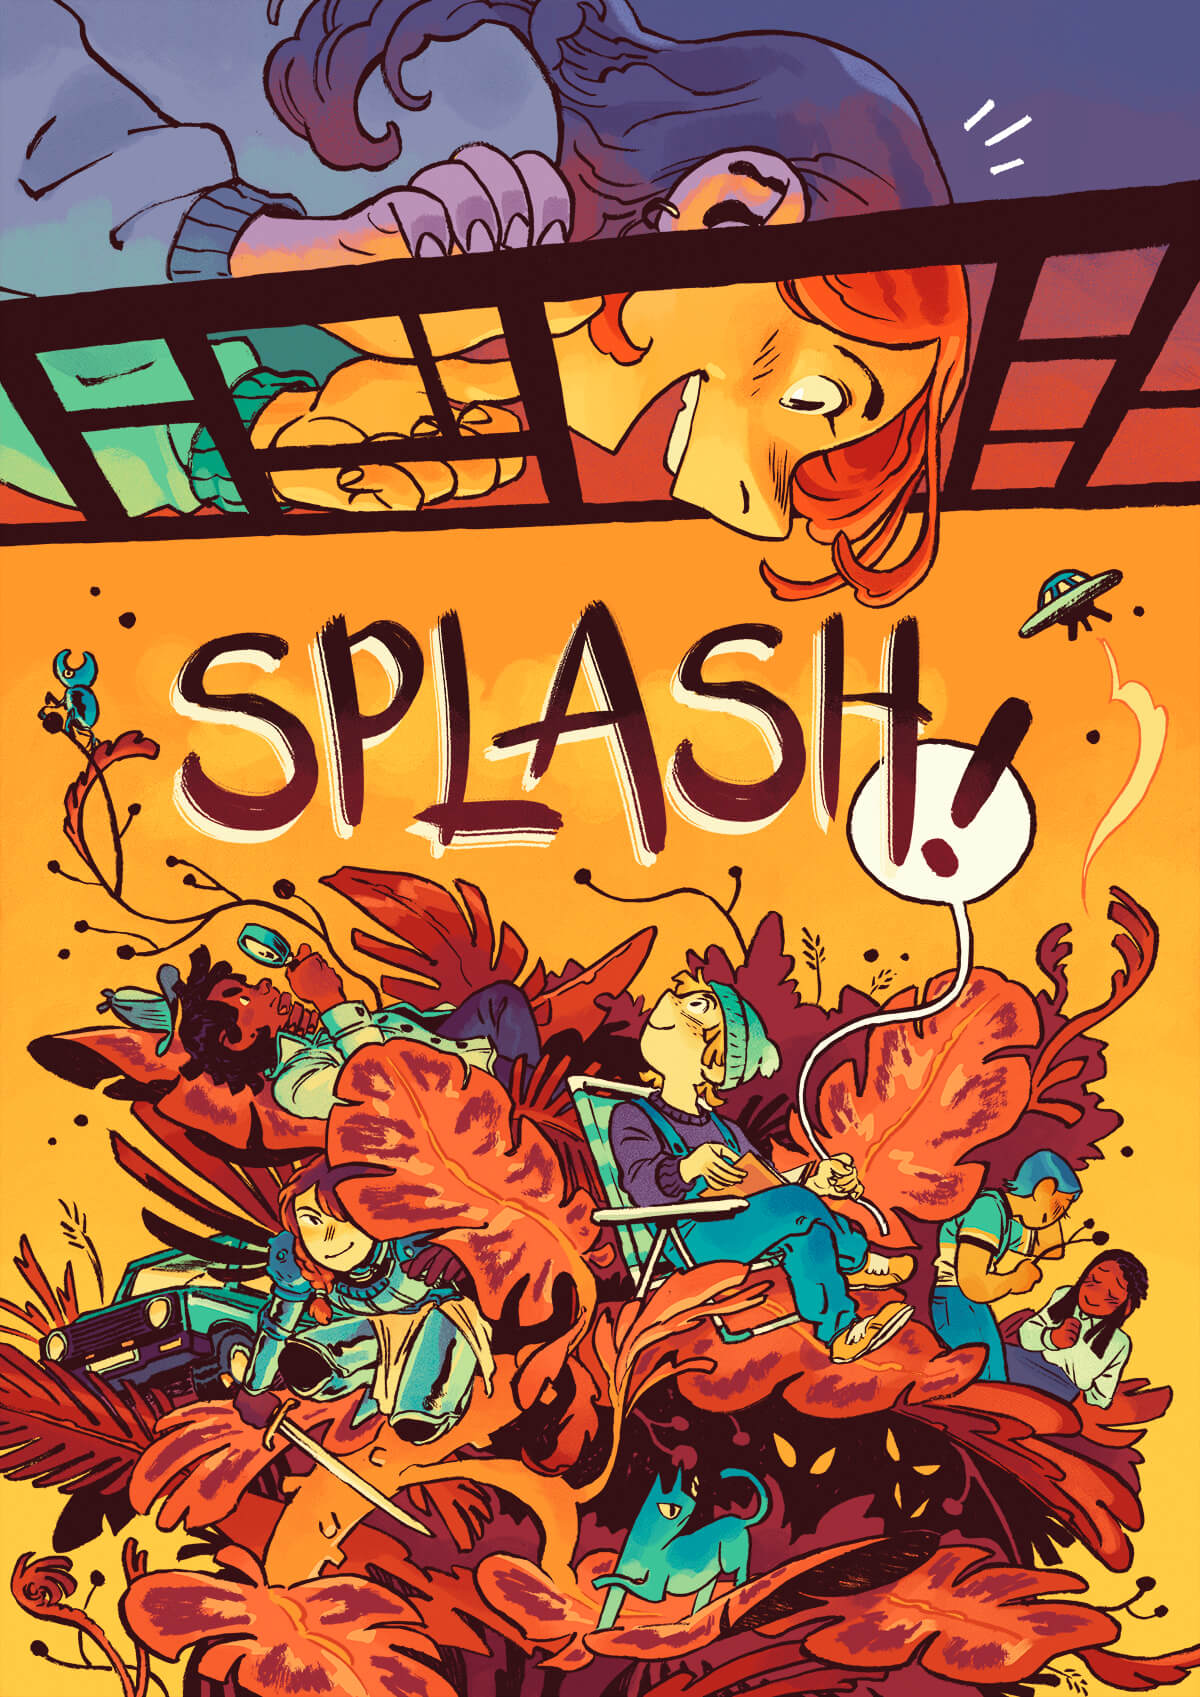 SPLASH Sagunt